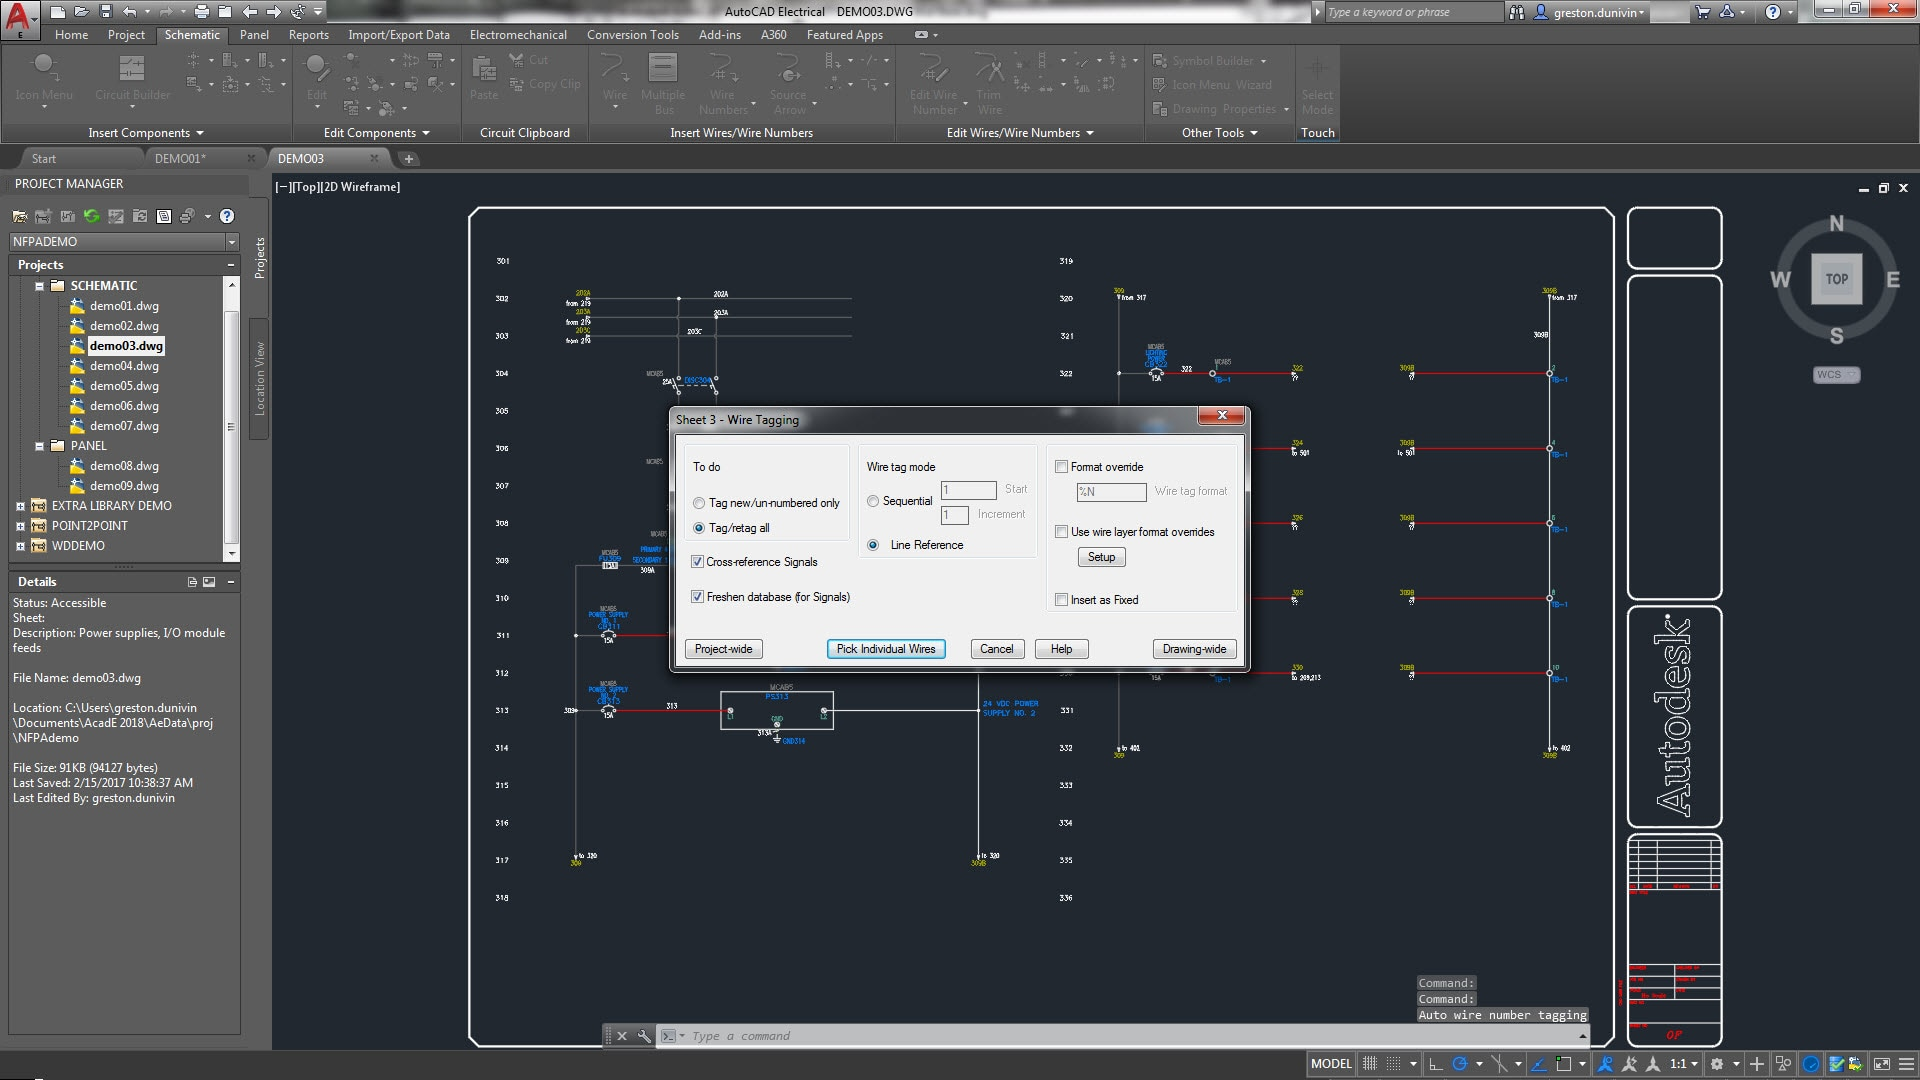 Autocad Electrical Toolset Design Software How To Construct Wiring Diagrams Industrial Controls Schematic